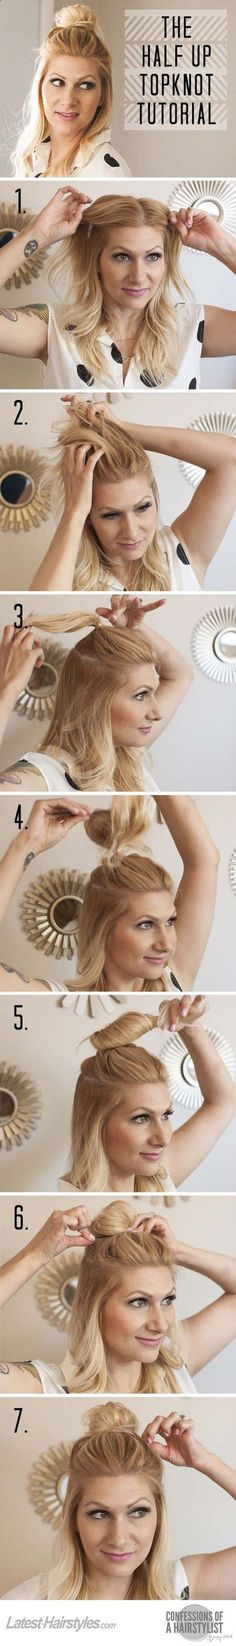 Secrets To Getting Your Girlfriend or Boyfriend Back - Cool and Easy DIY Hairstyles - The Half Up Top Knot - Quick and Easy Ideas for Back to School Styles for Medium, Short and Long Hair - Fun Tips and Best Step by Step Tutorials for Teens, Prom, Weddings, Special Occasions and Work. How To Win Your Ex Back Free Video Presentation Reveals Secrets To Getting Your Boyfriend Back